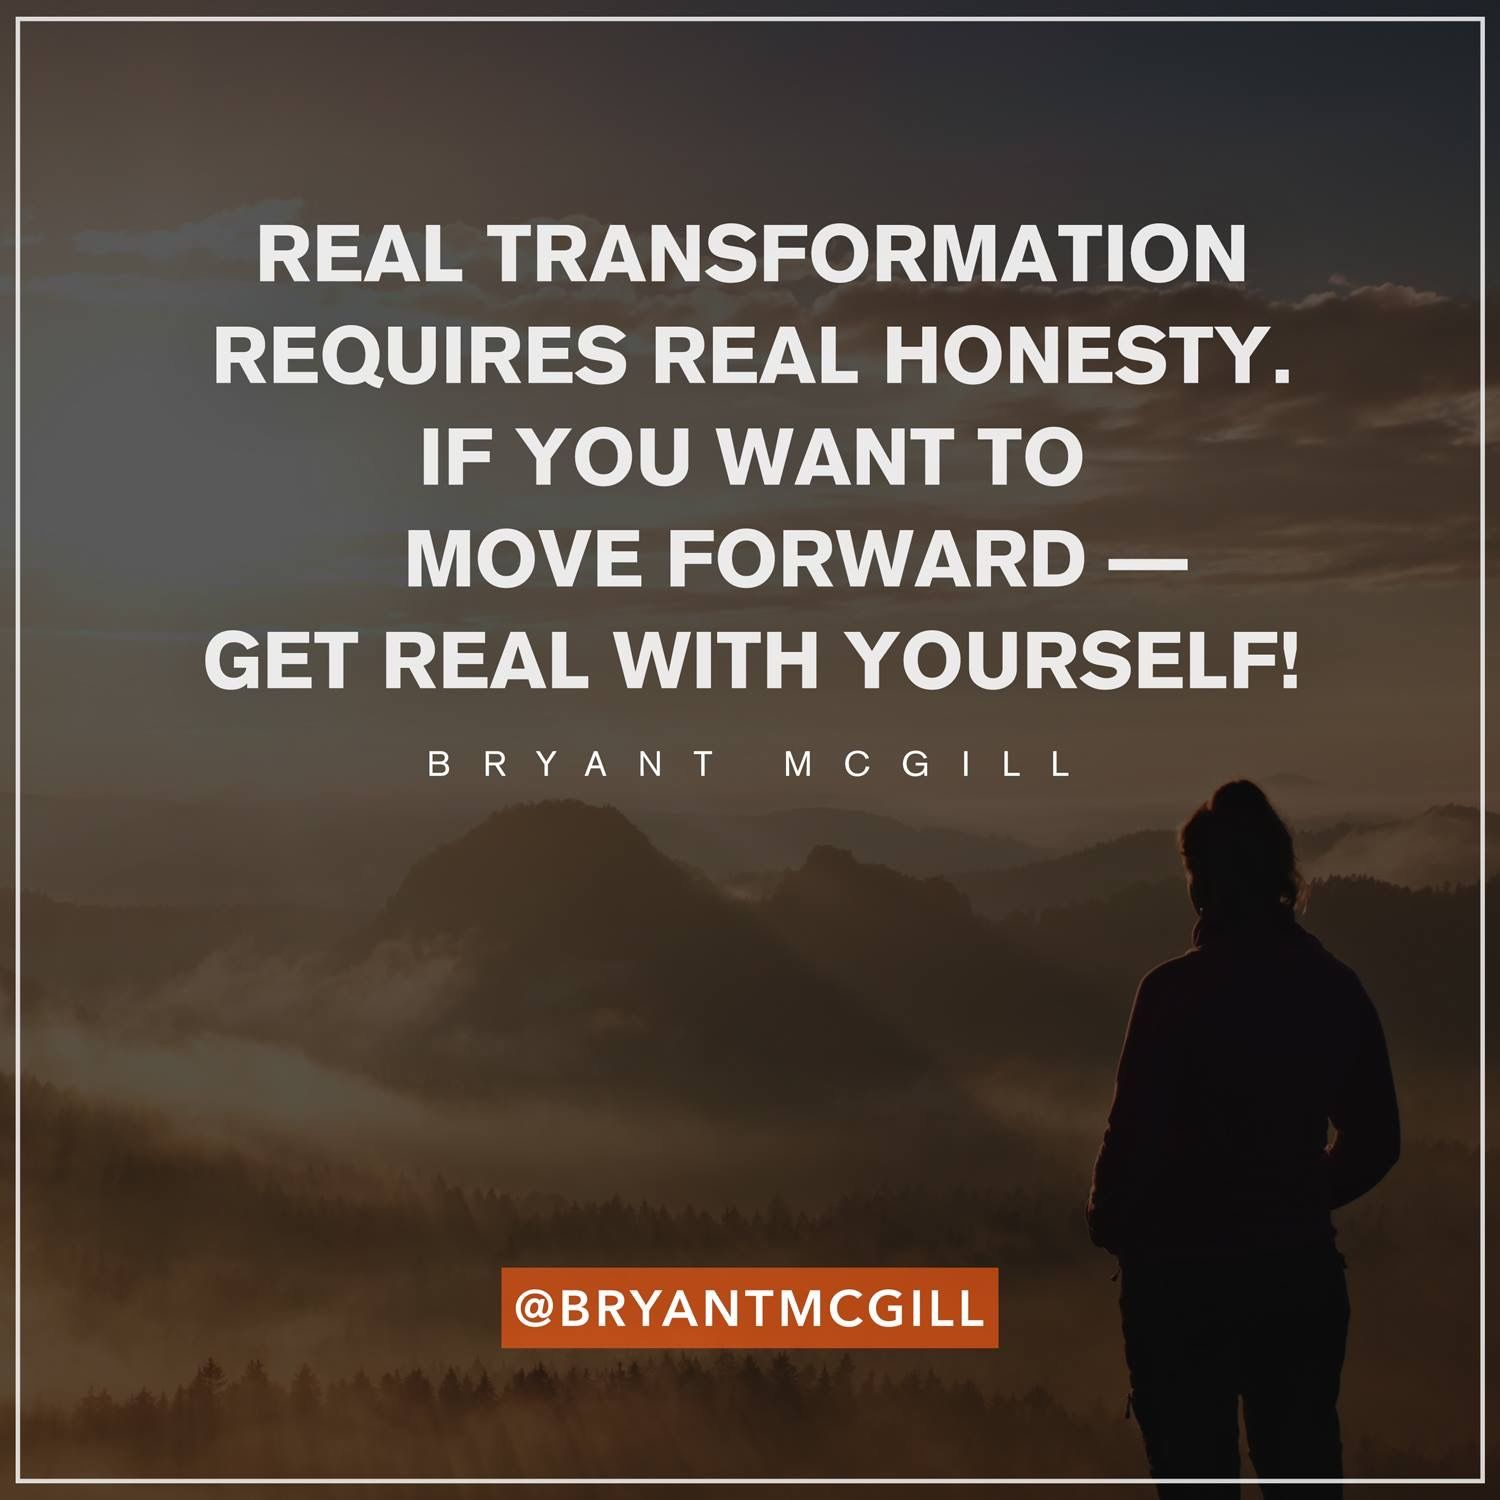 Be honest with yourself & transformation is possible.